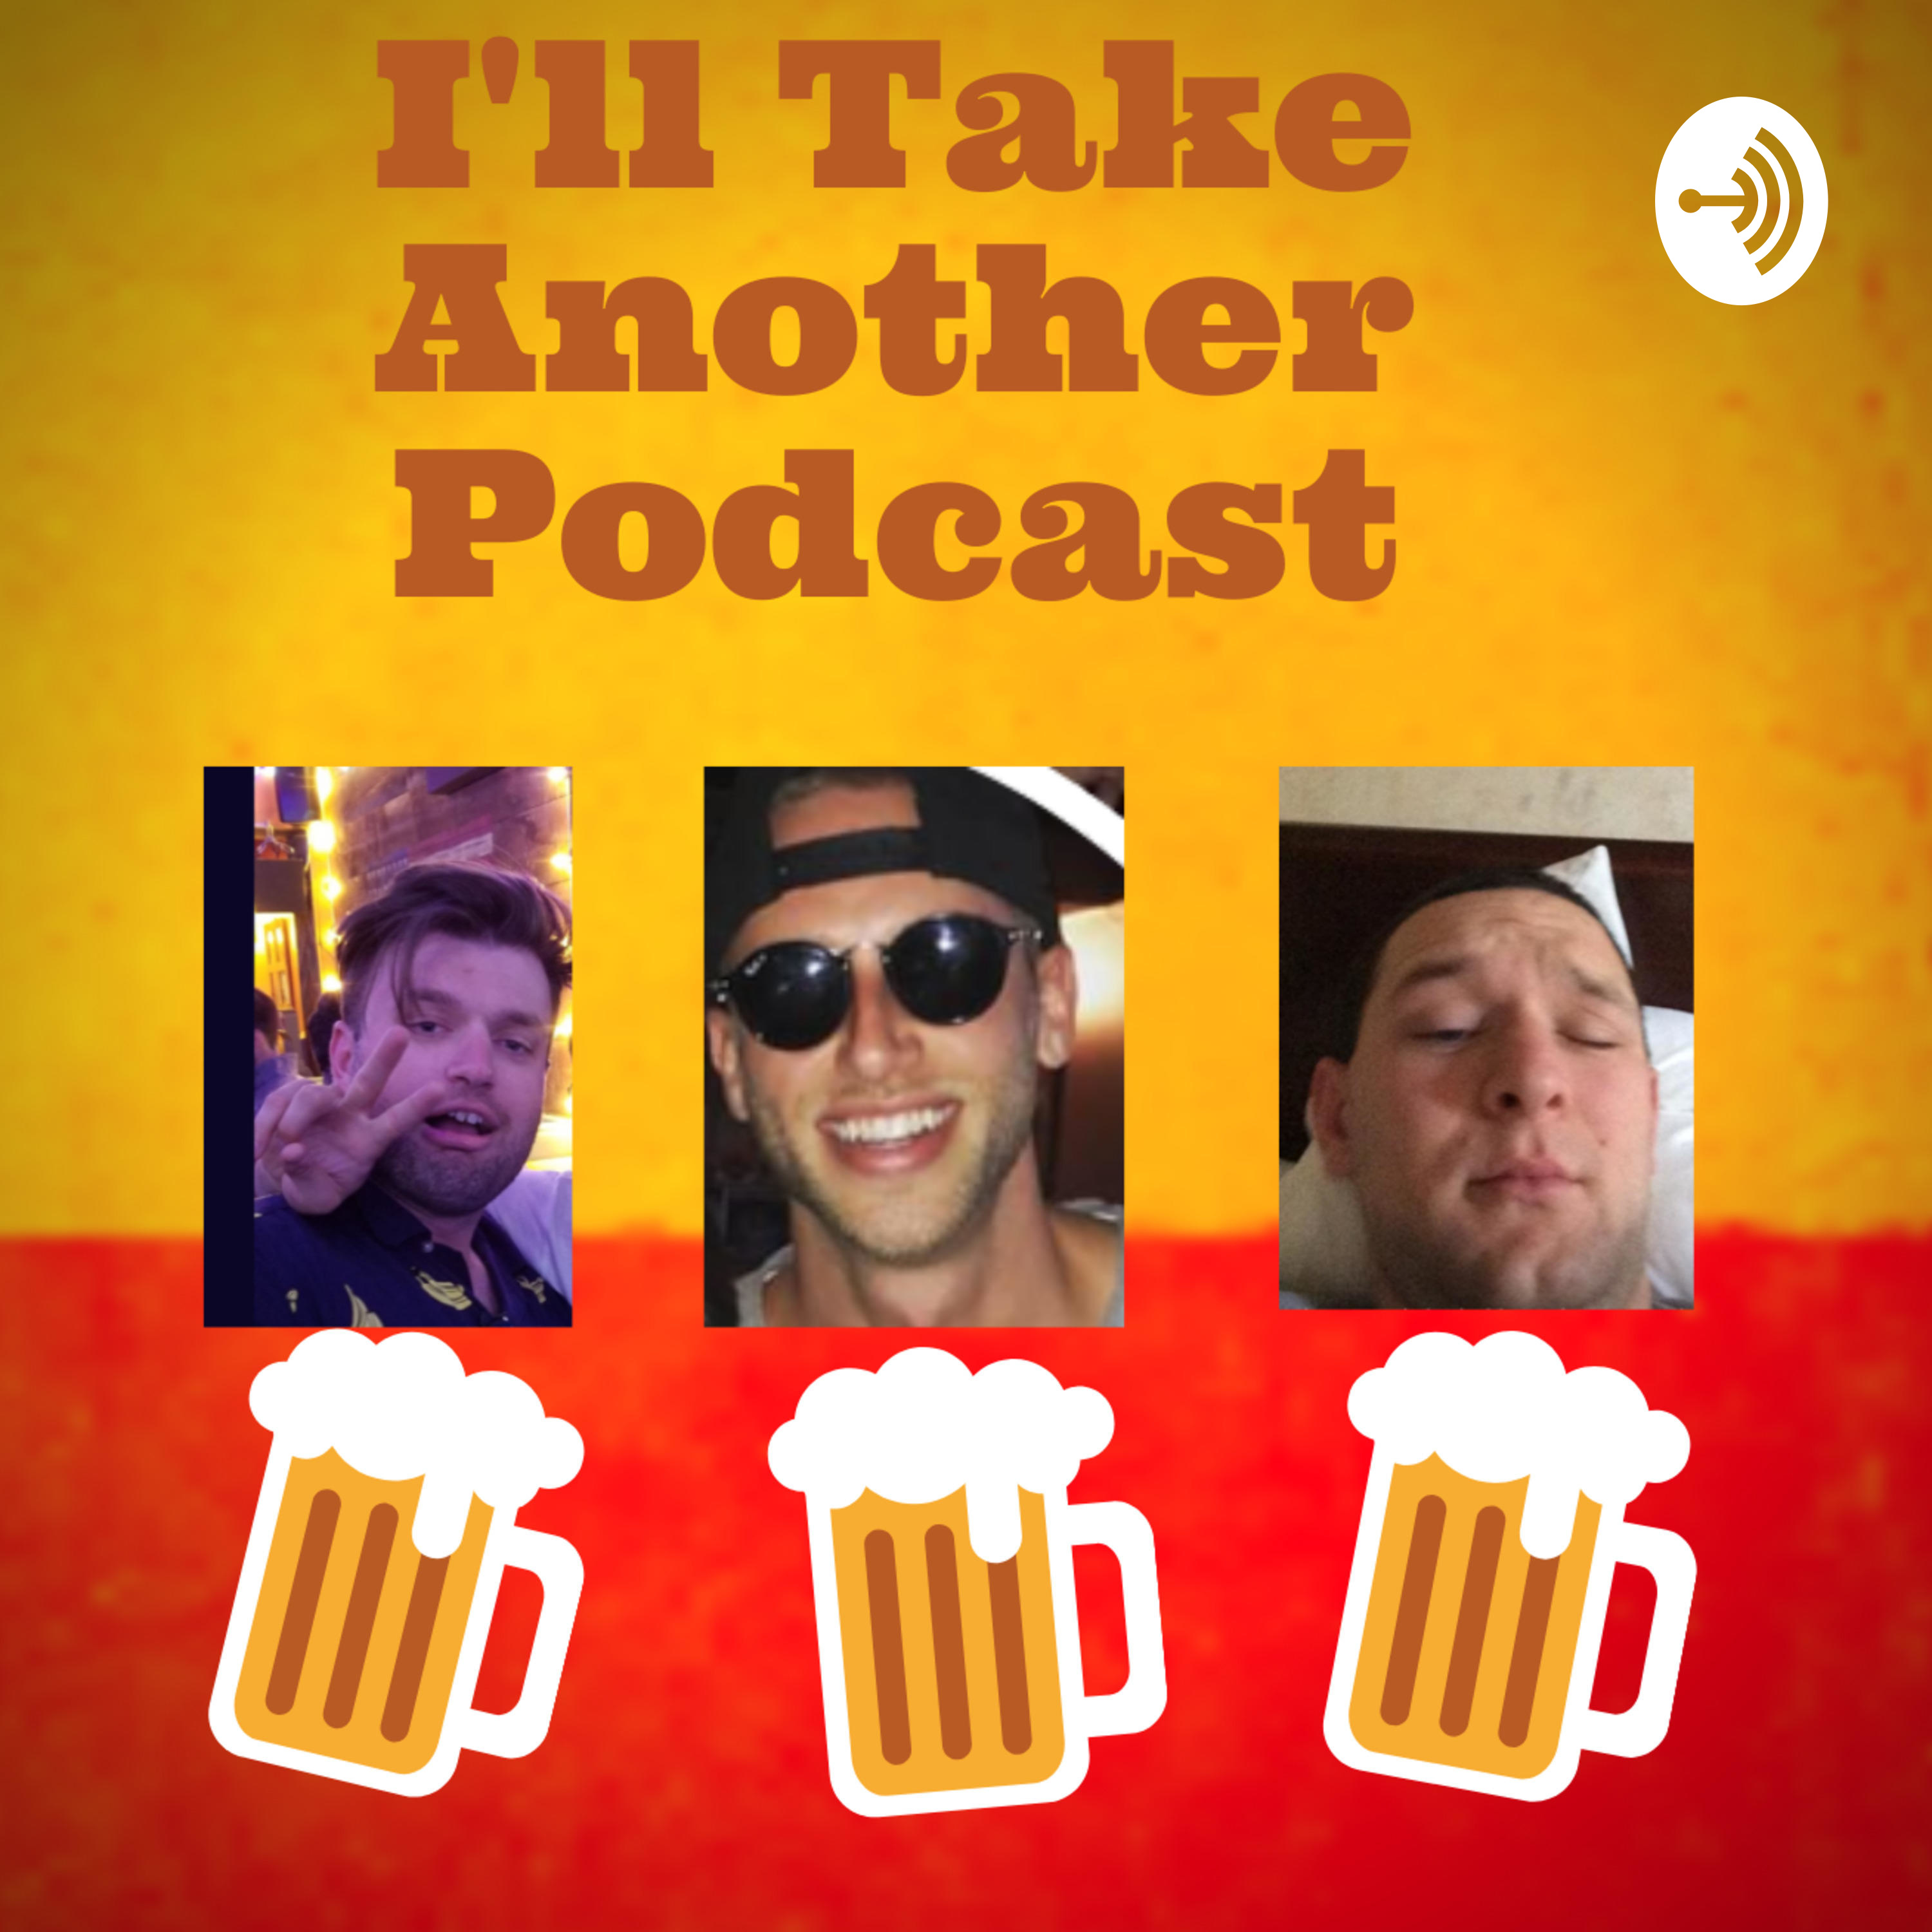 I'll Take Another Podcast